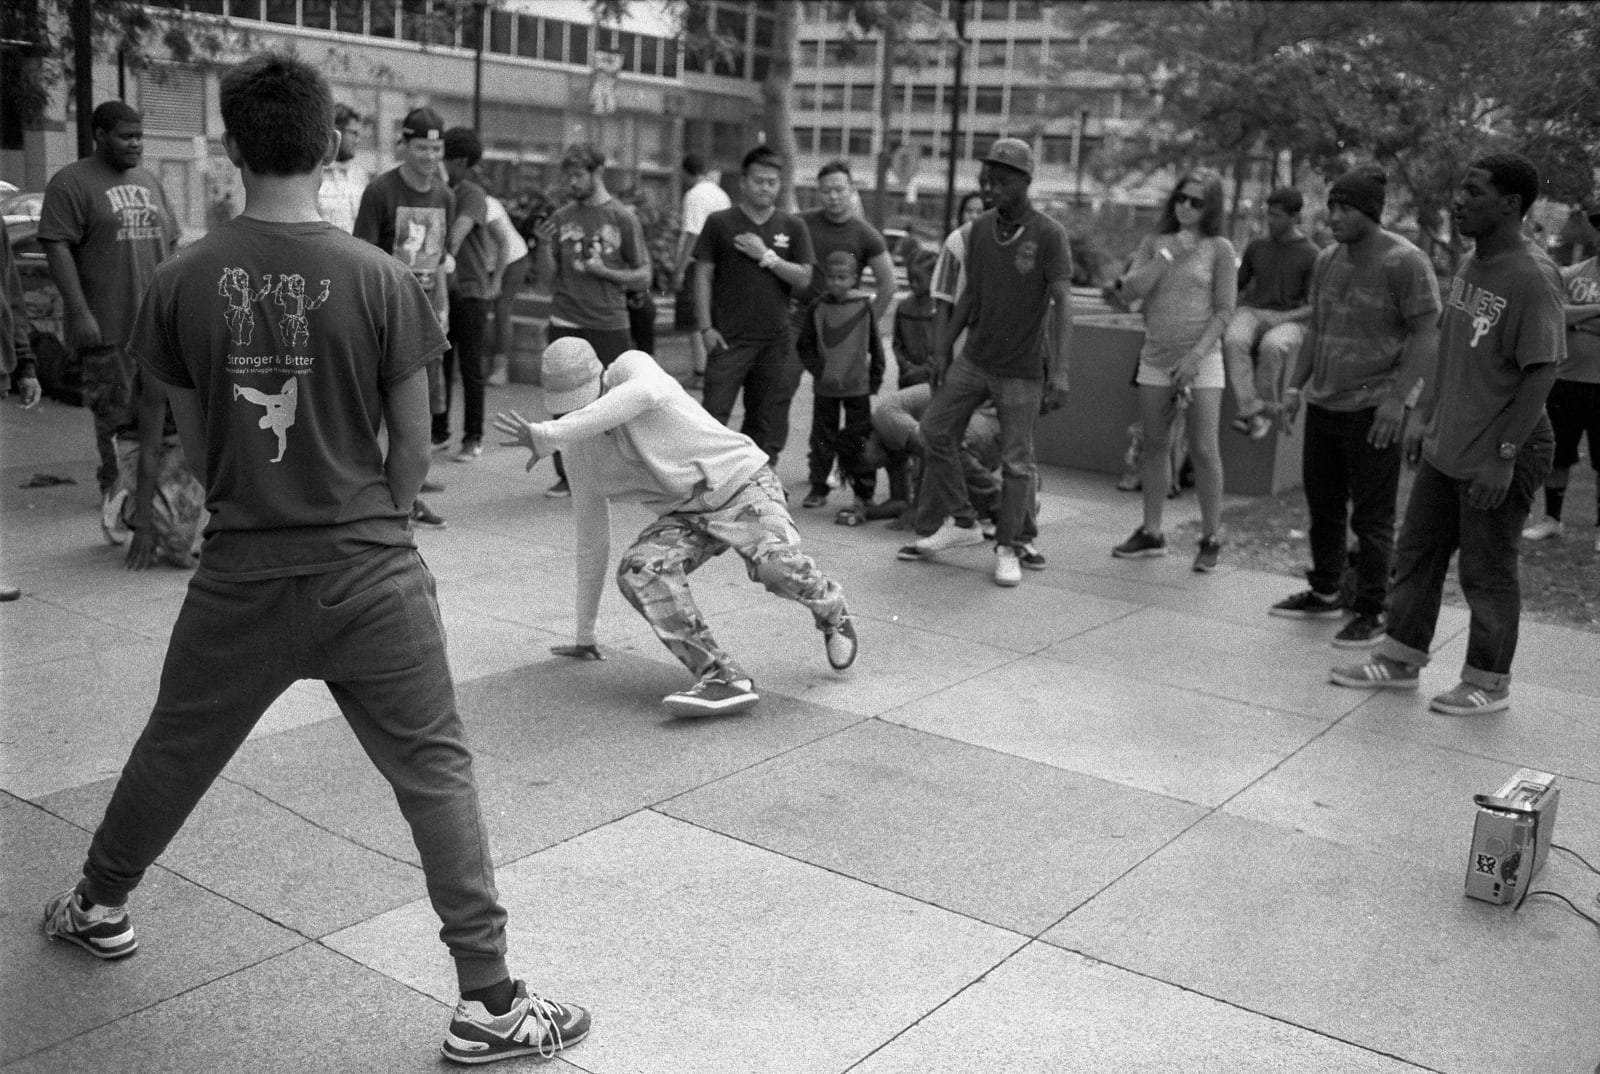 A group of teenagers doing hip-hop dance at Philly Love Park